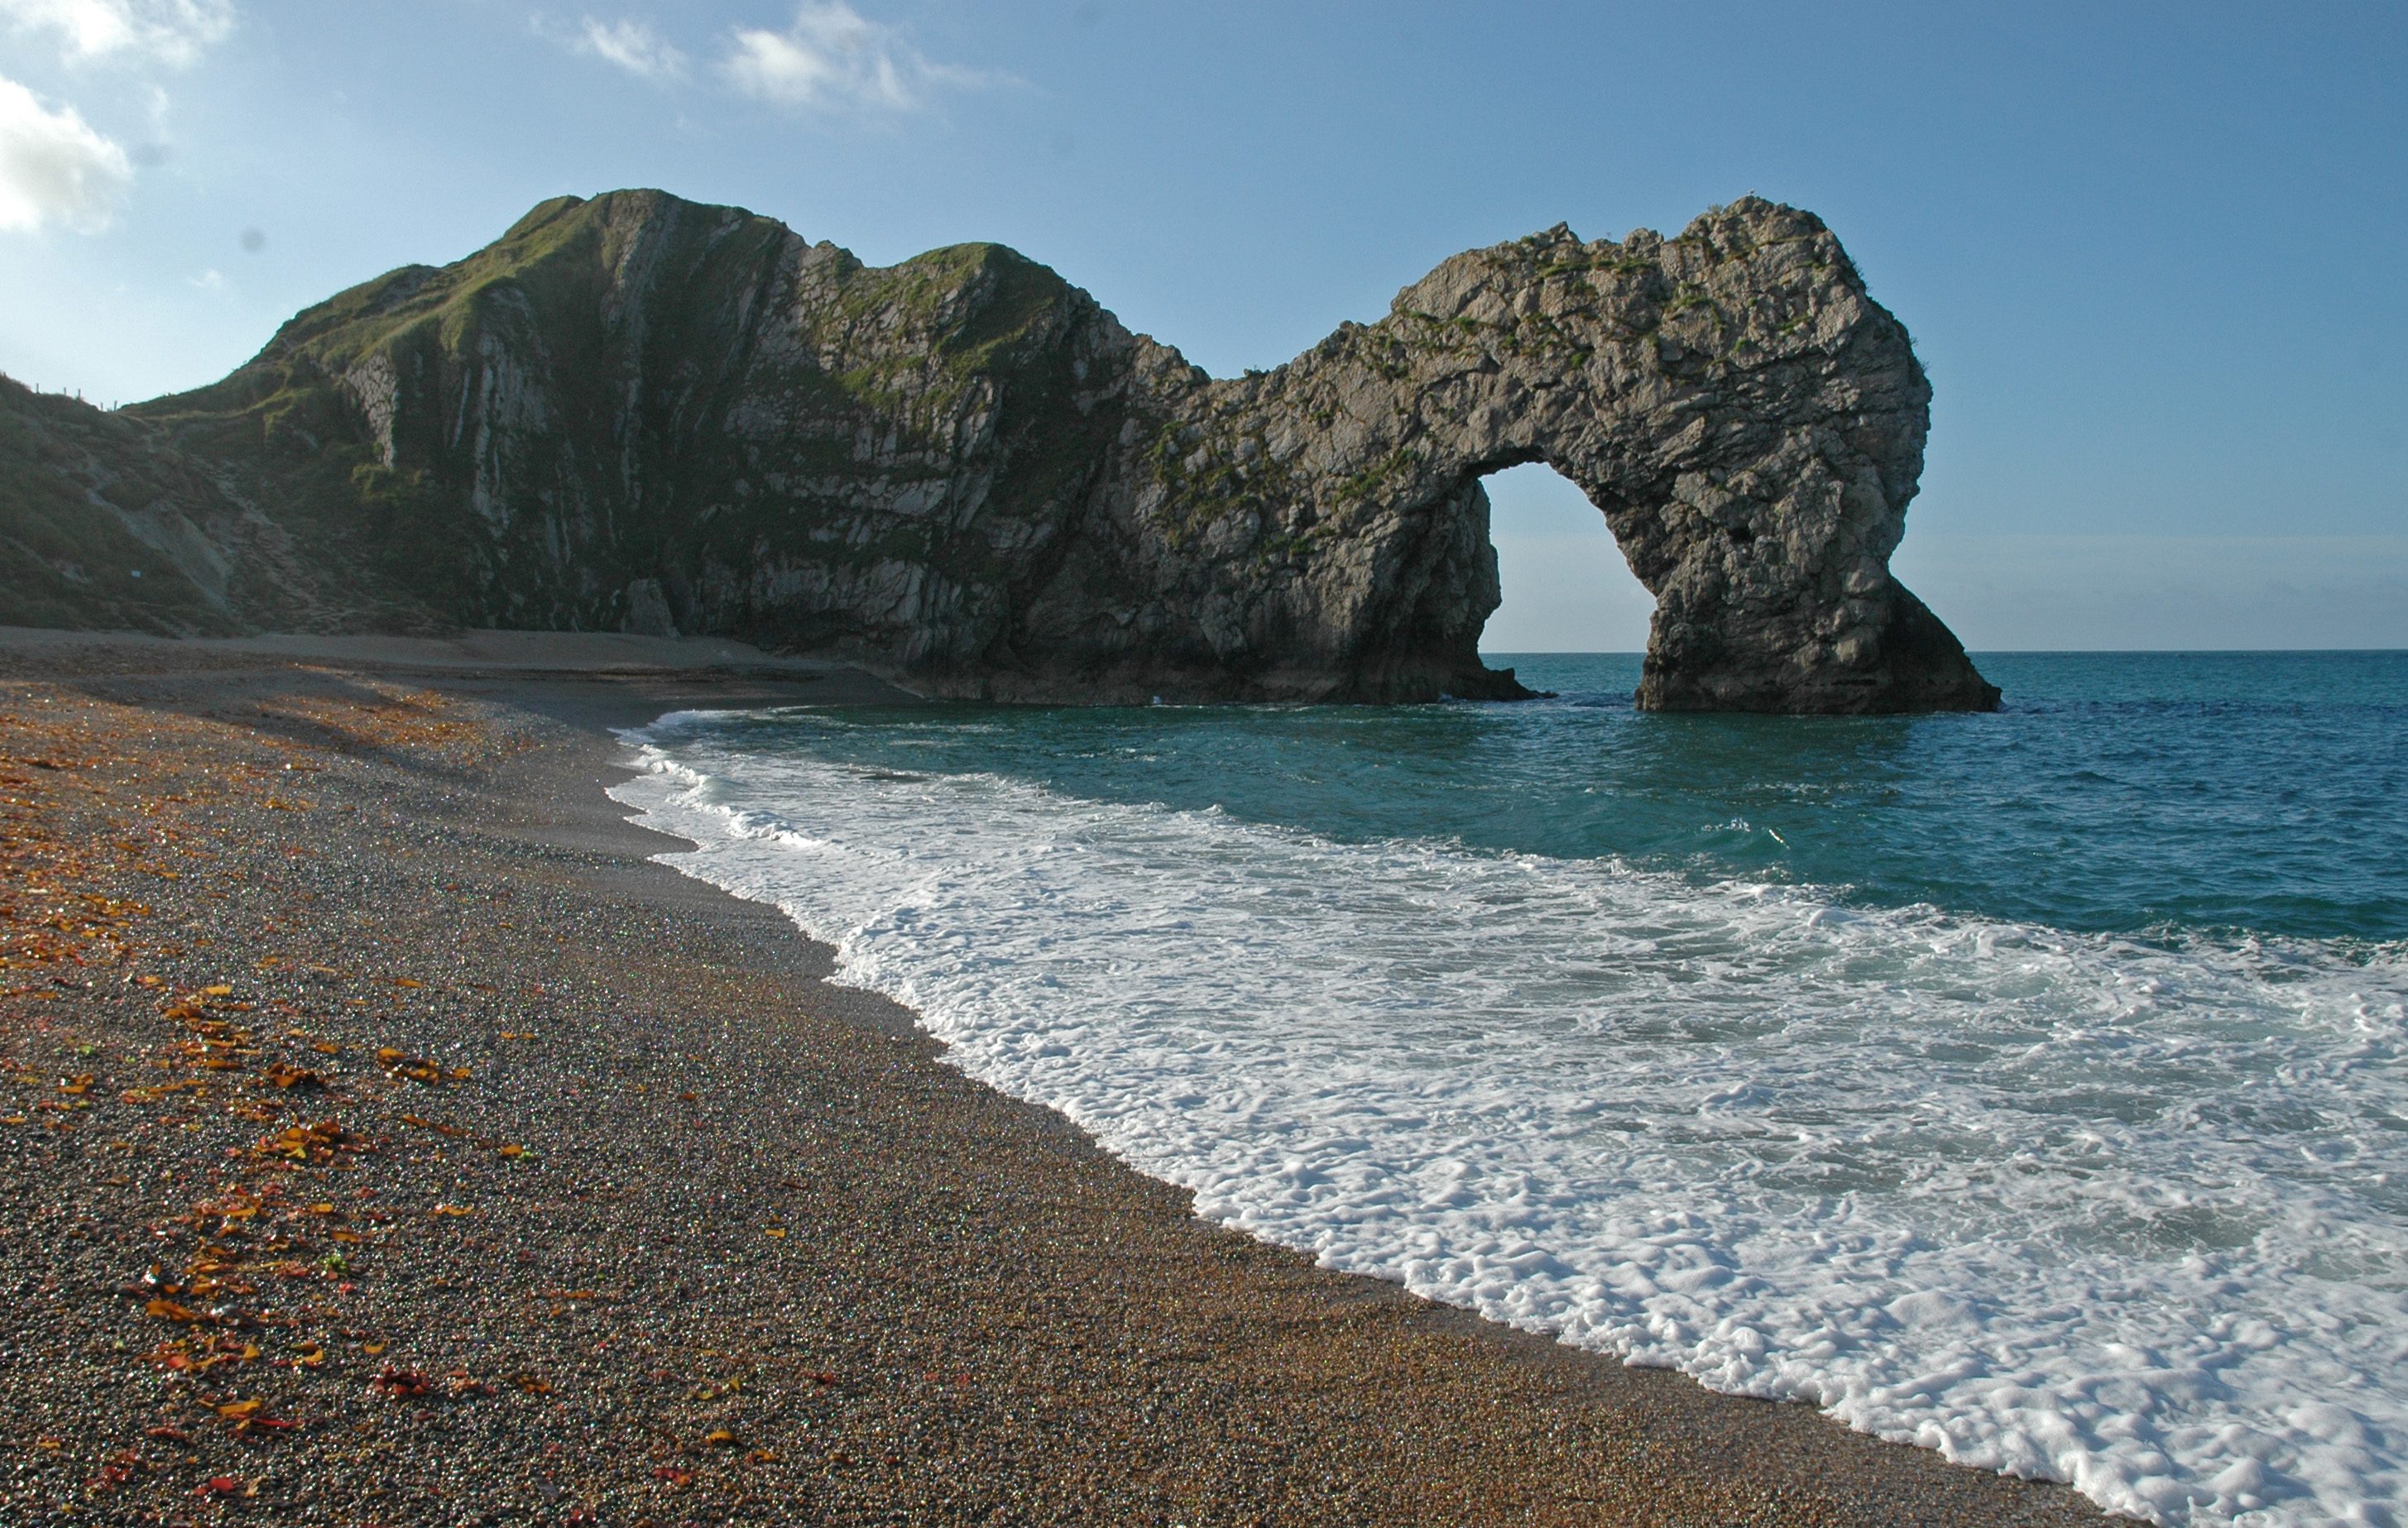 Thousands of us are drawn to iconic coastal landmarks like Durdle Door every year